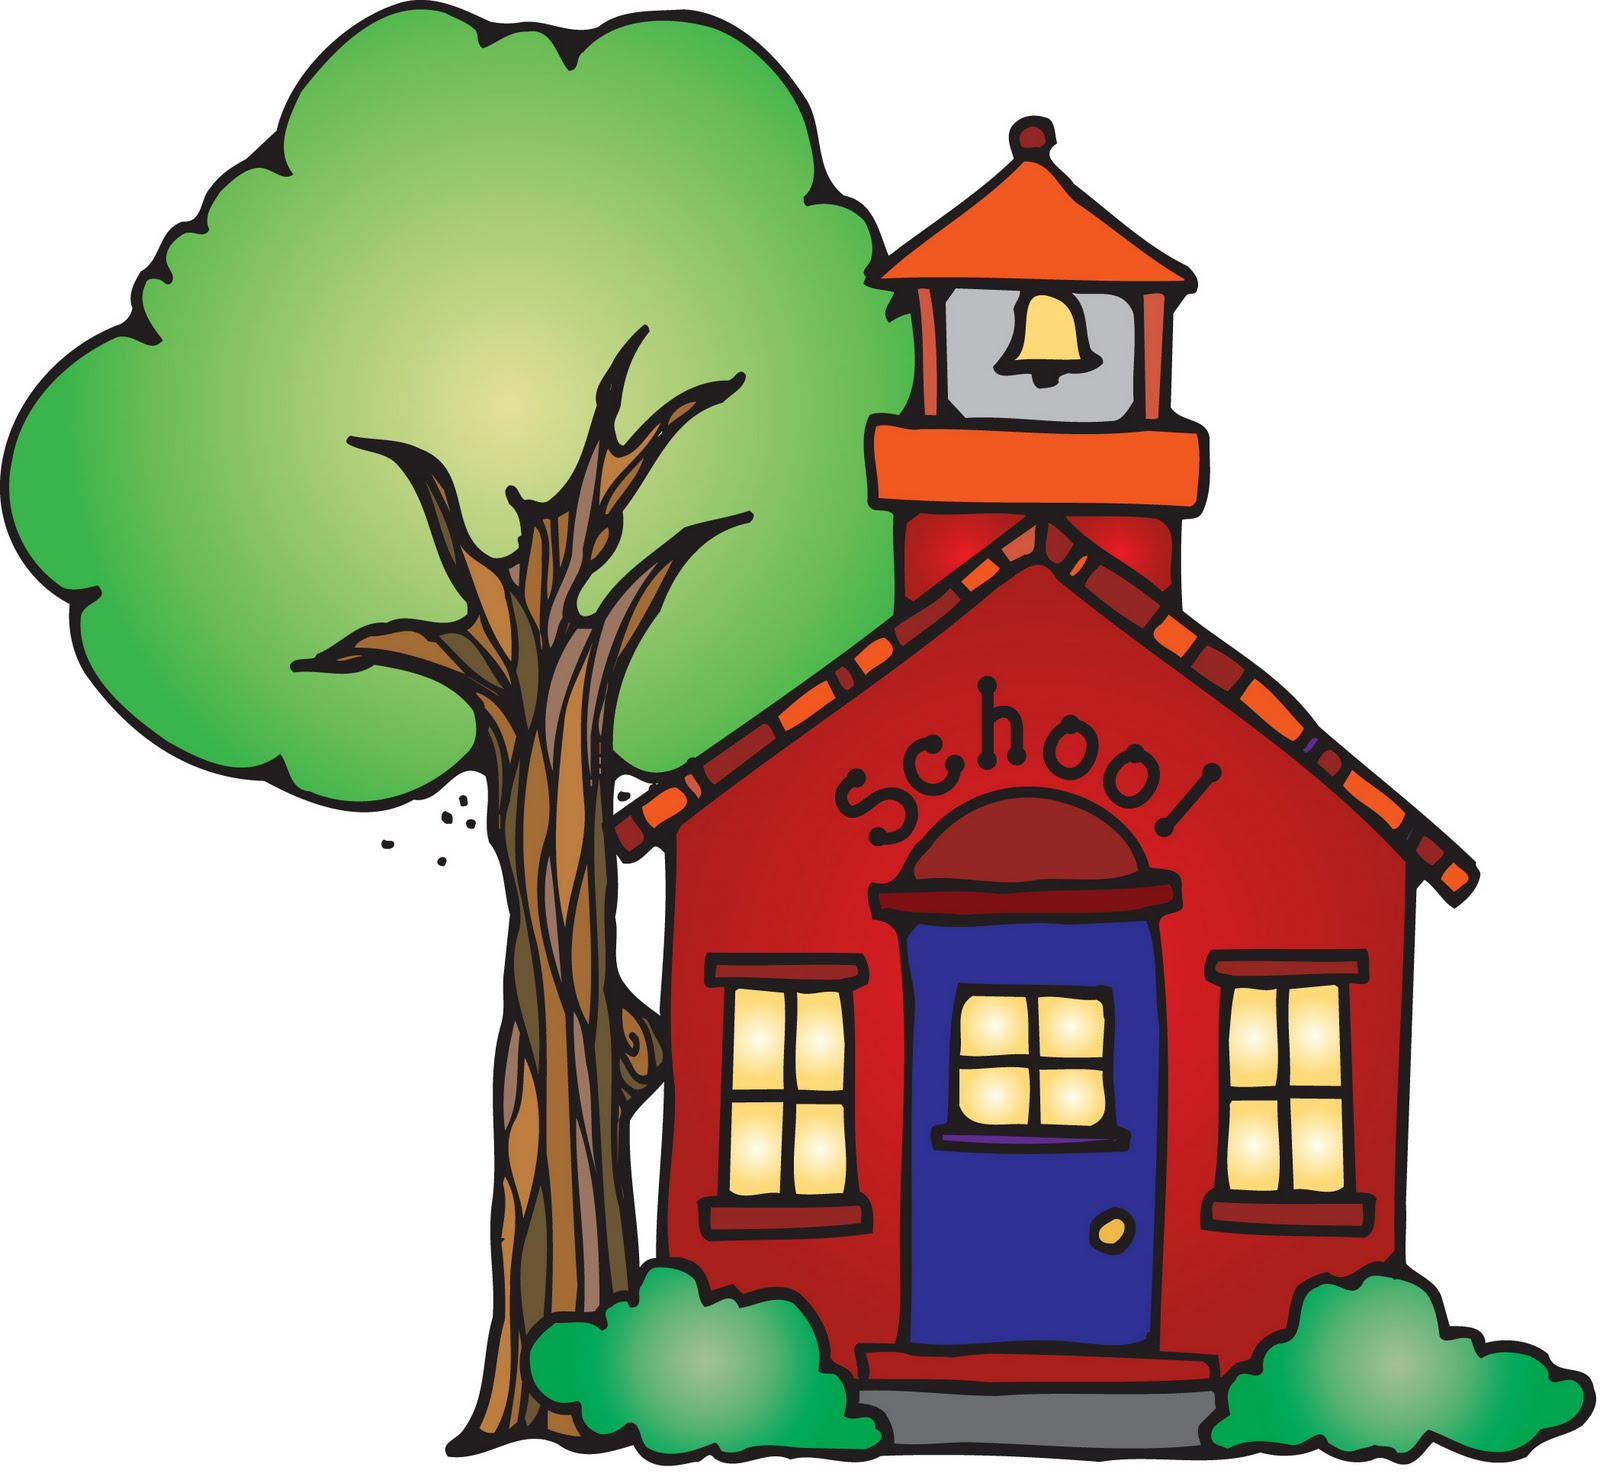 Schoolhouse clipart. School house images panda